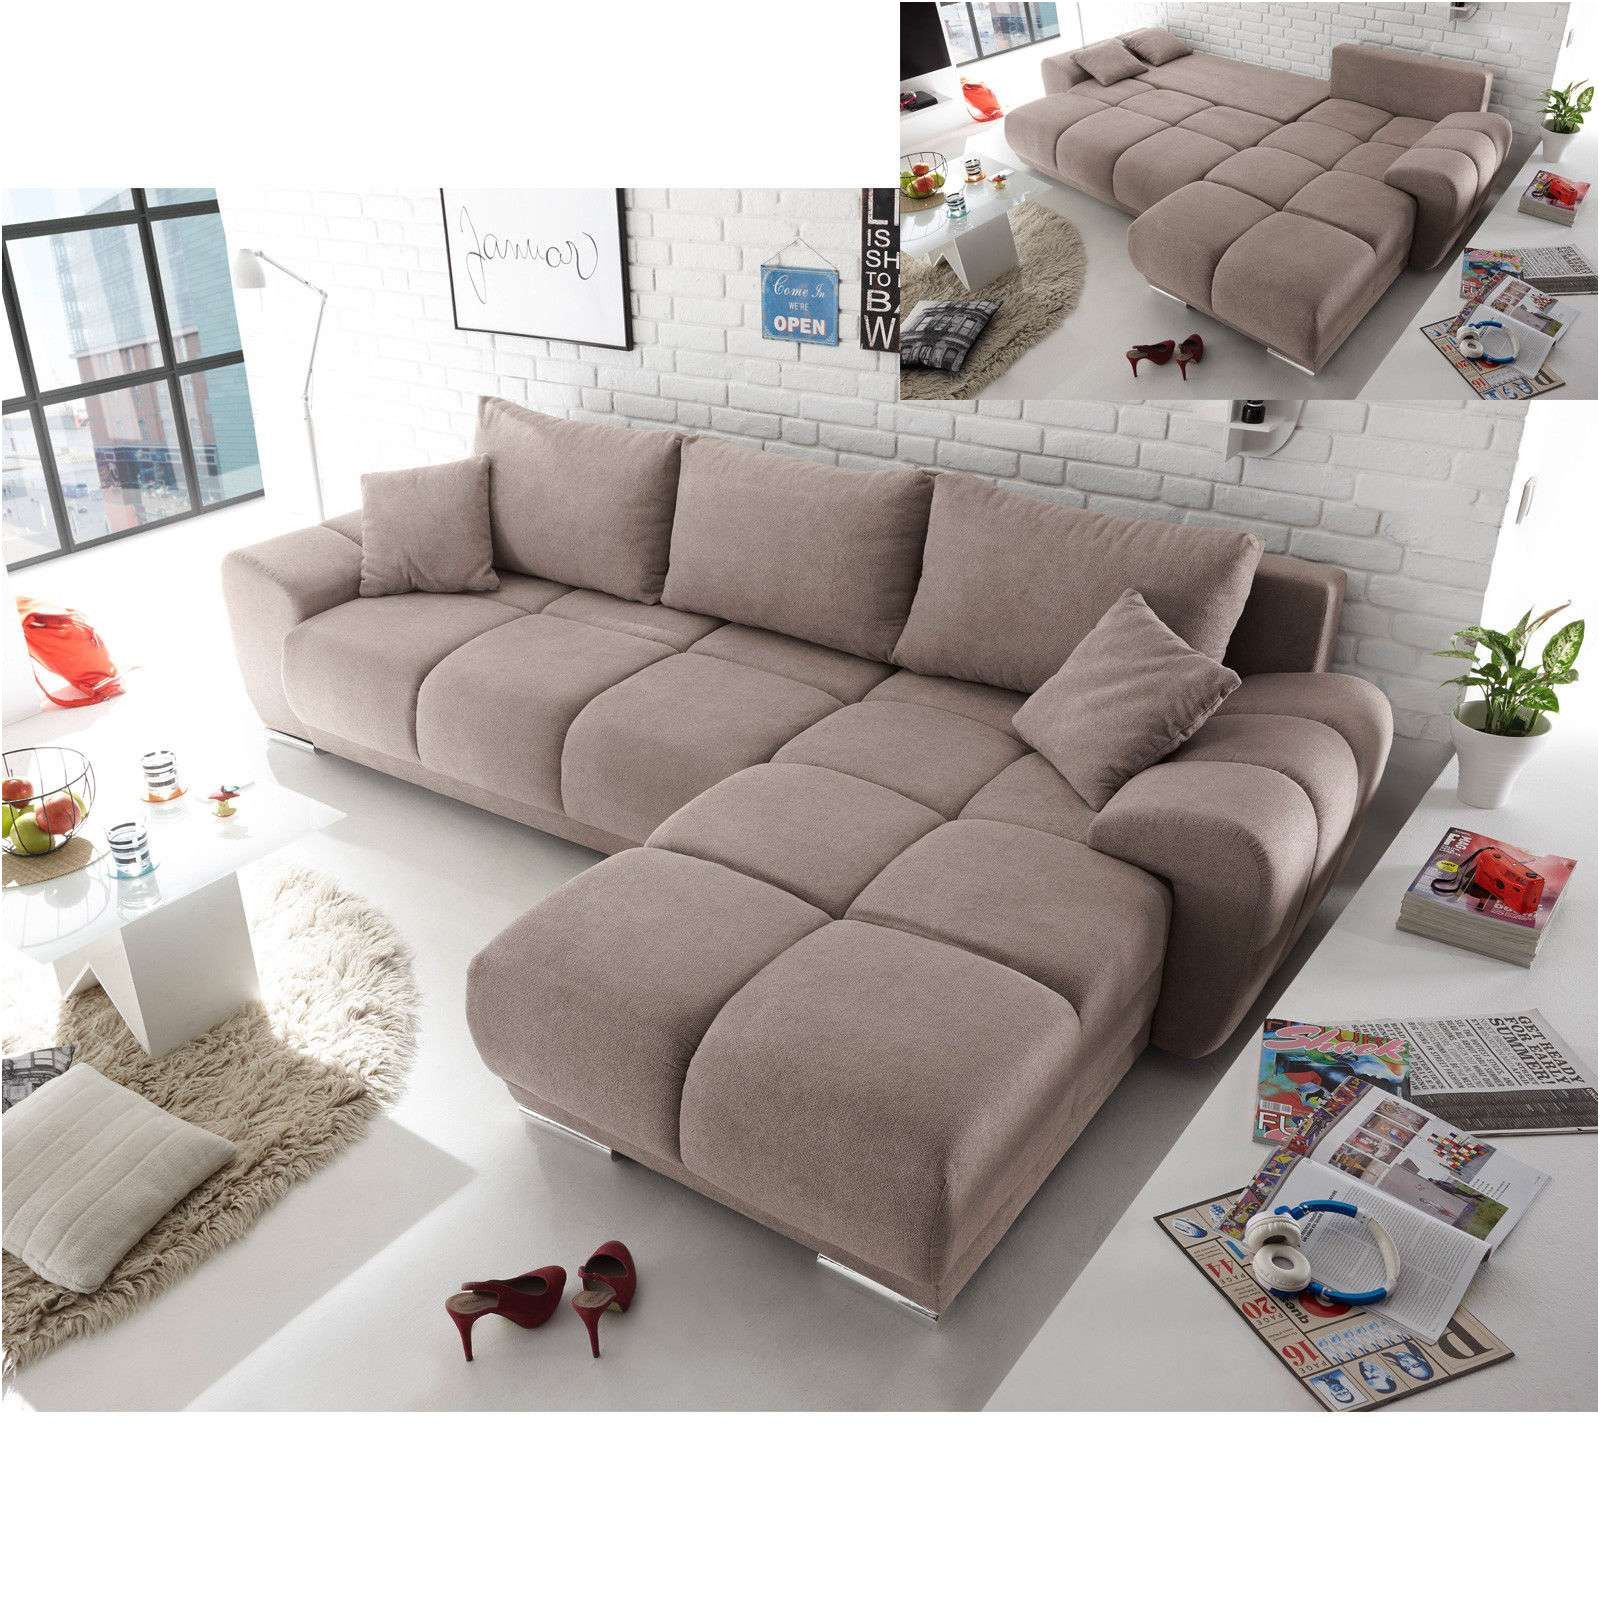 Ordinary Federkern Sofa Mit Schlaffunktion Home Decor Sectional Couch Sofa Couch